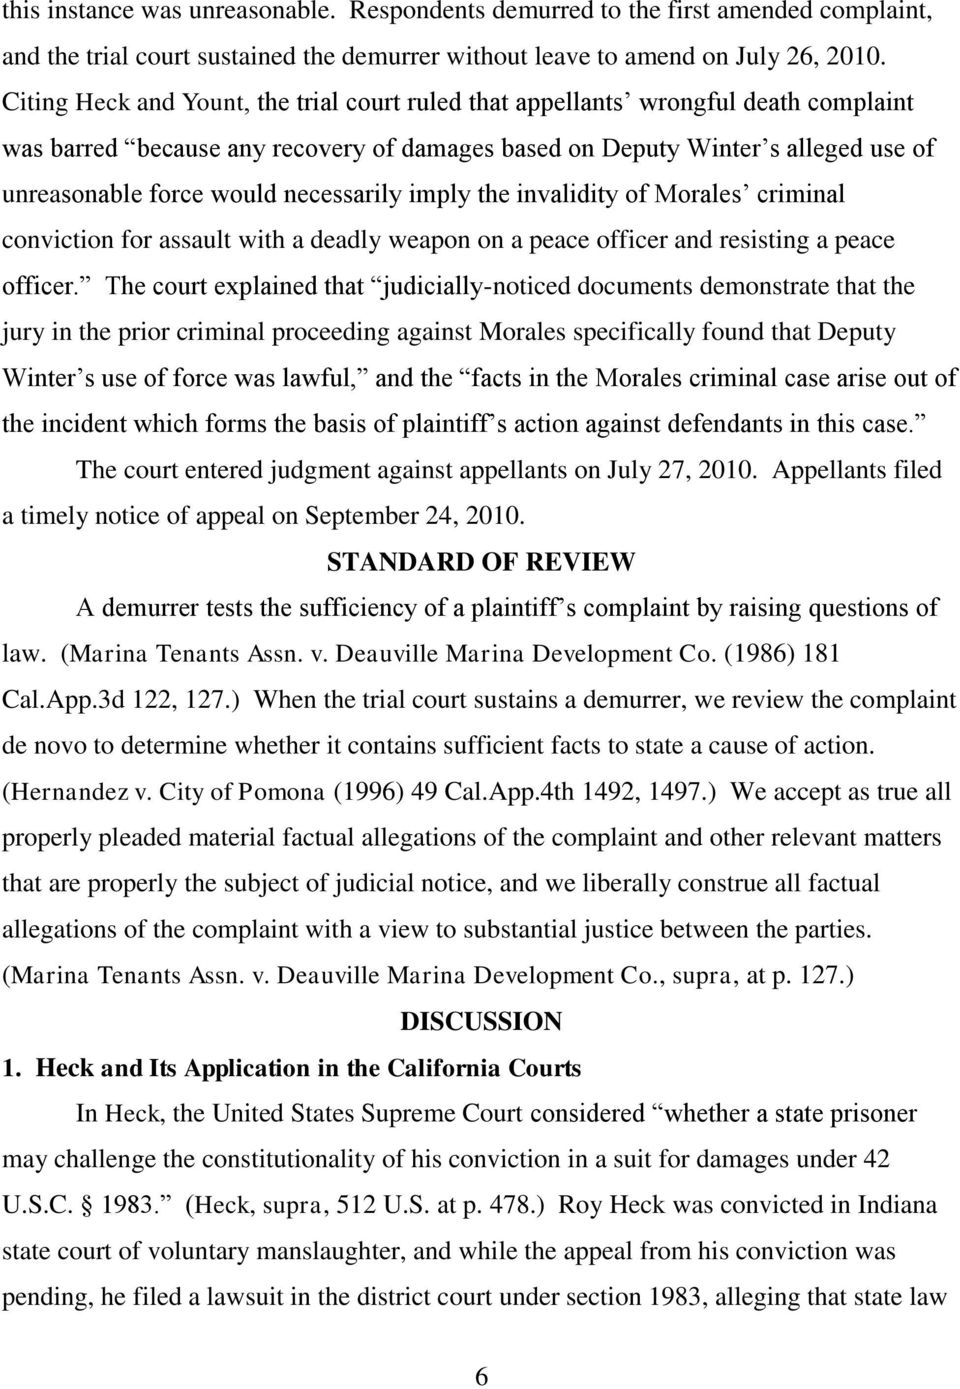 necessarily imply the invalidity of Morales criminal conviction for assault with a deadly weapon on a peace officer and resisting a peace officer.